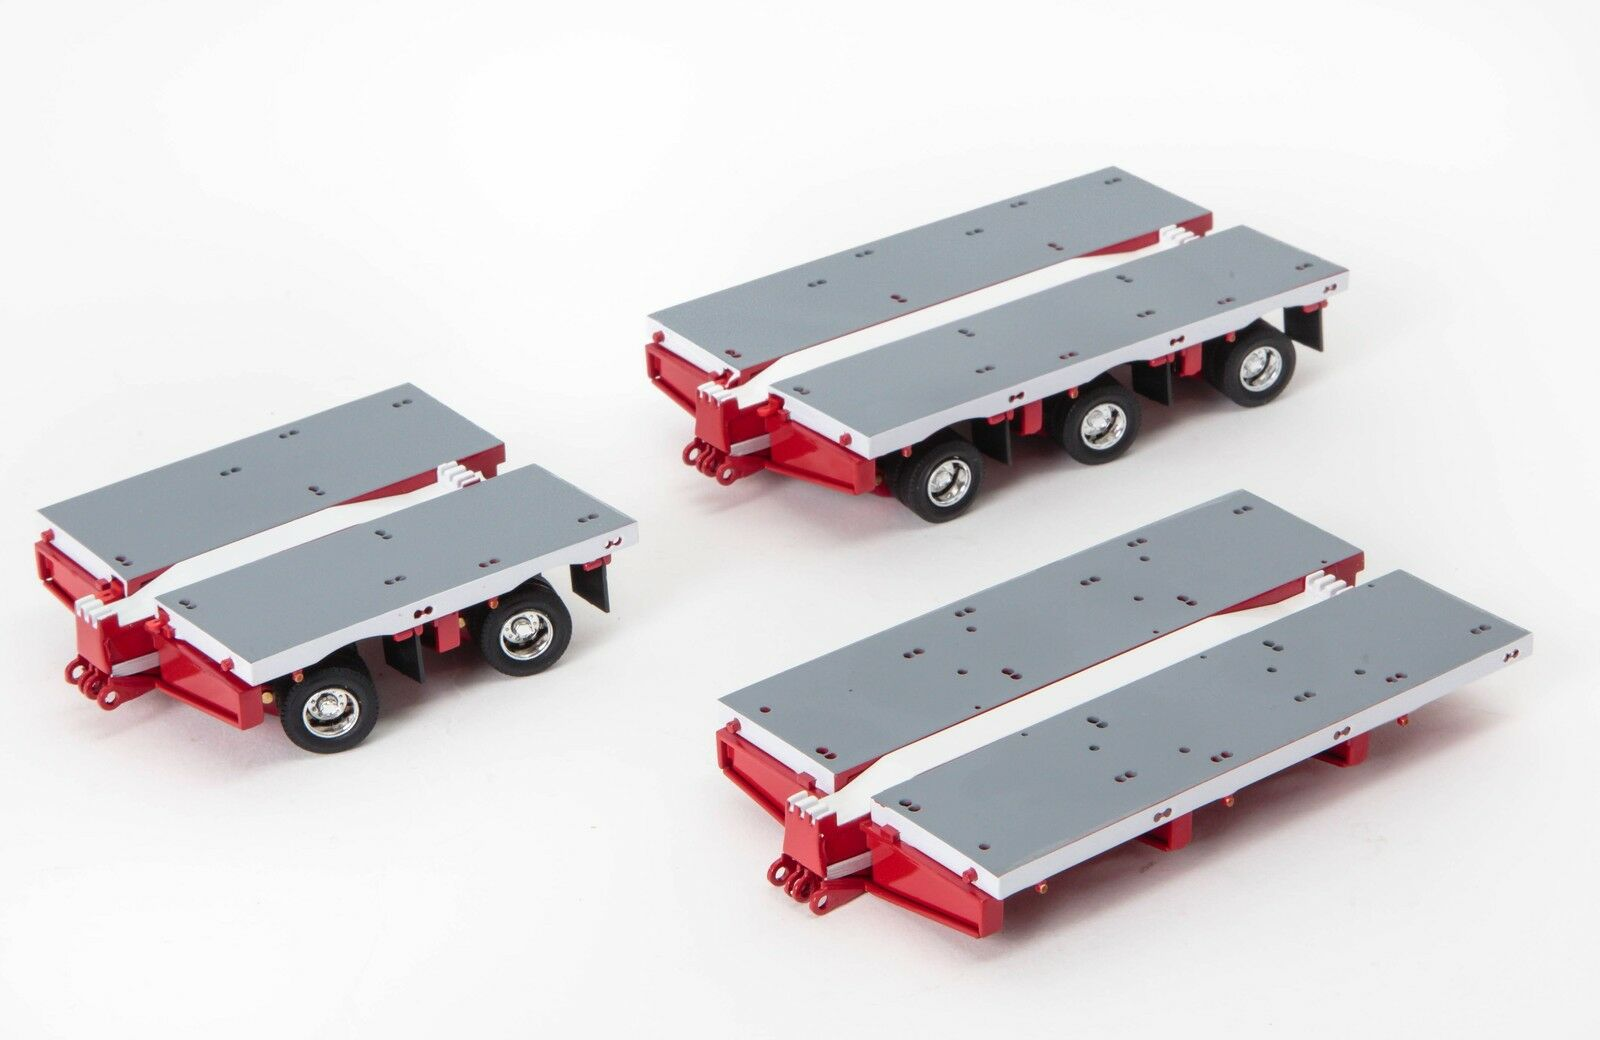 Drake Steerable Trailer 2x8 3x8 Clip Accessory Kit blanc rouge 1 50